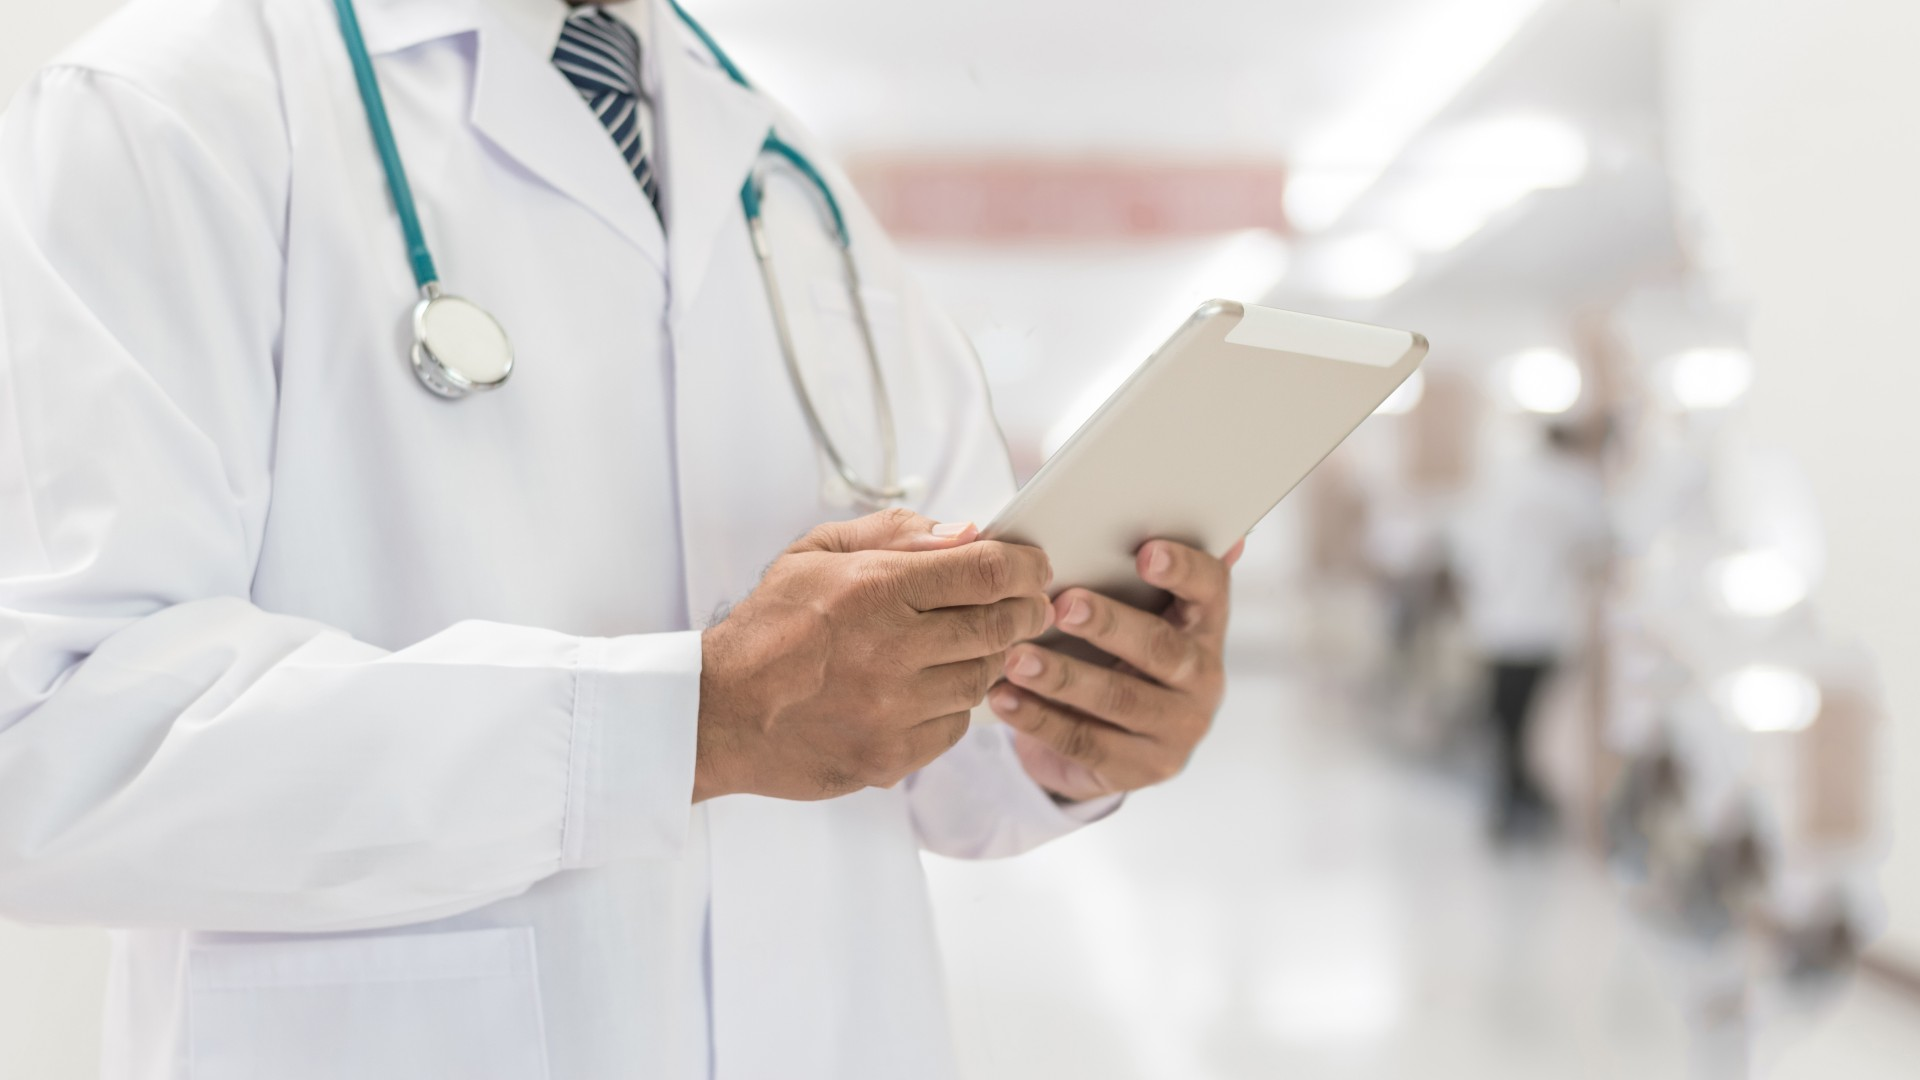 Image of a physician viewing medical records.